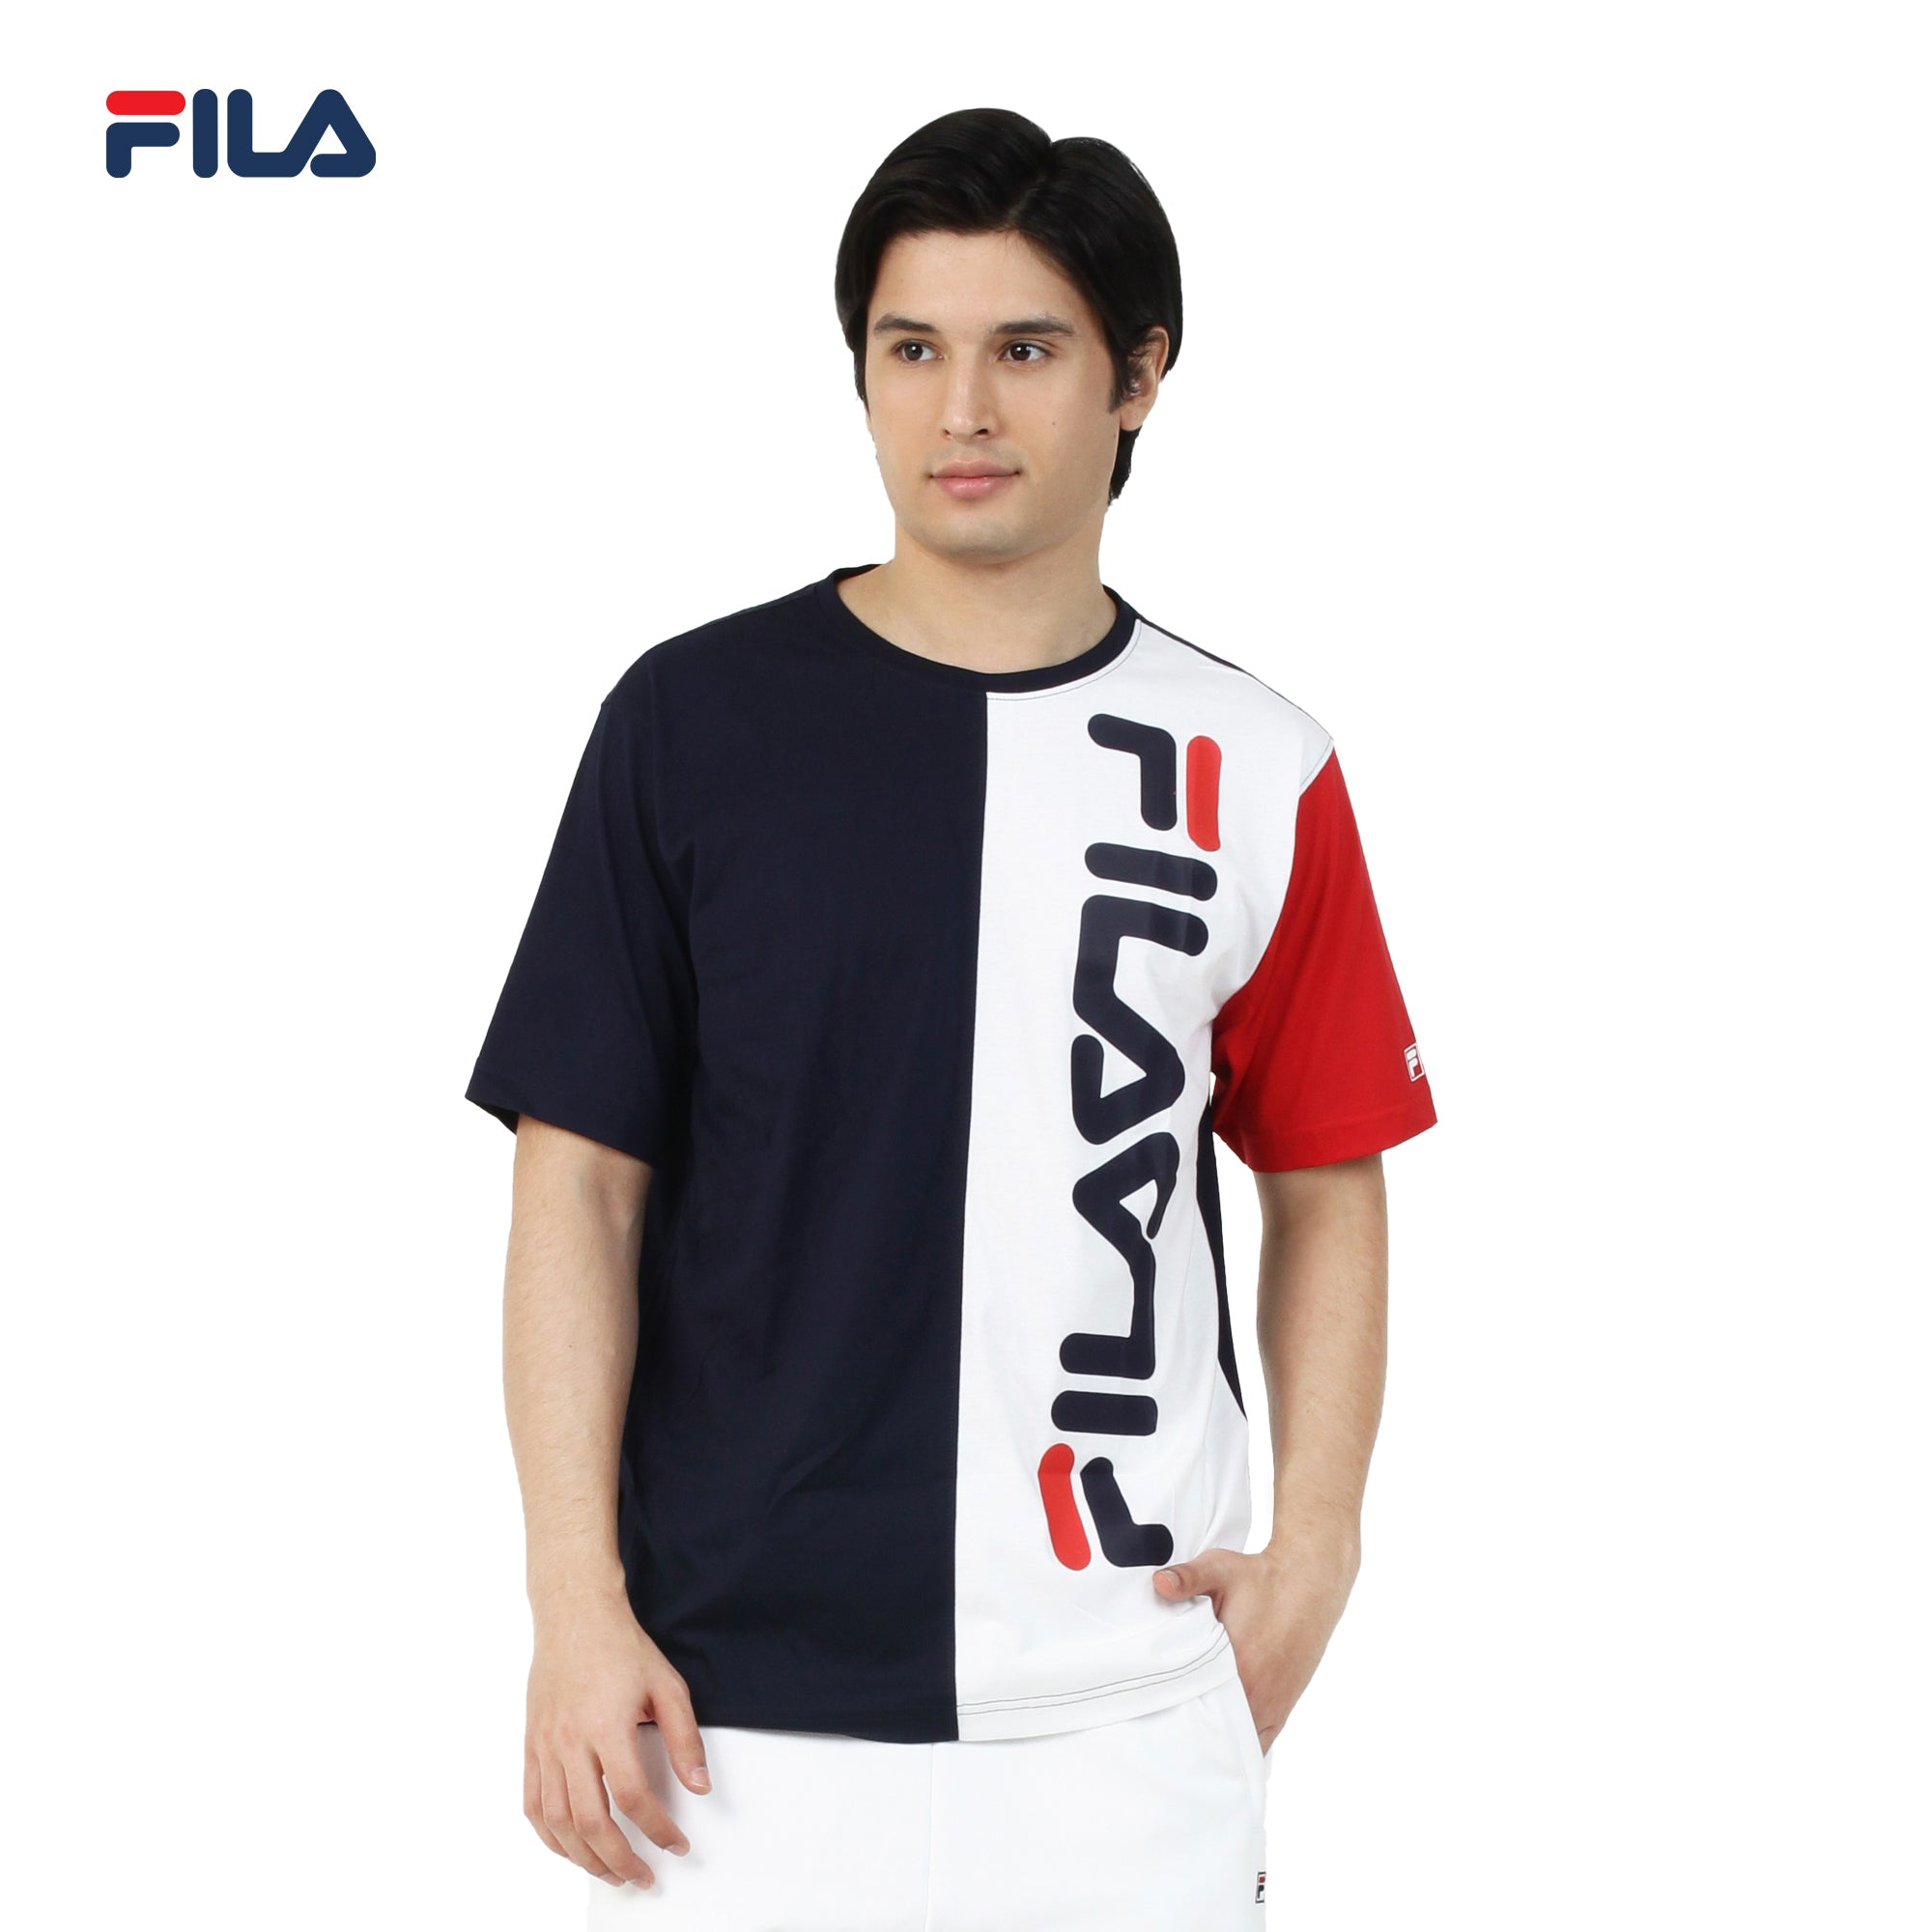 Fila Men's Tshirt Navy